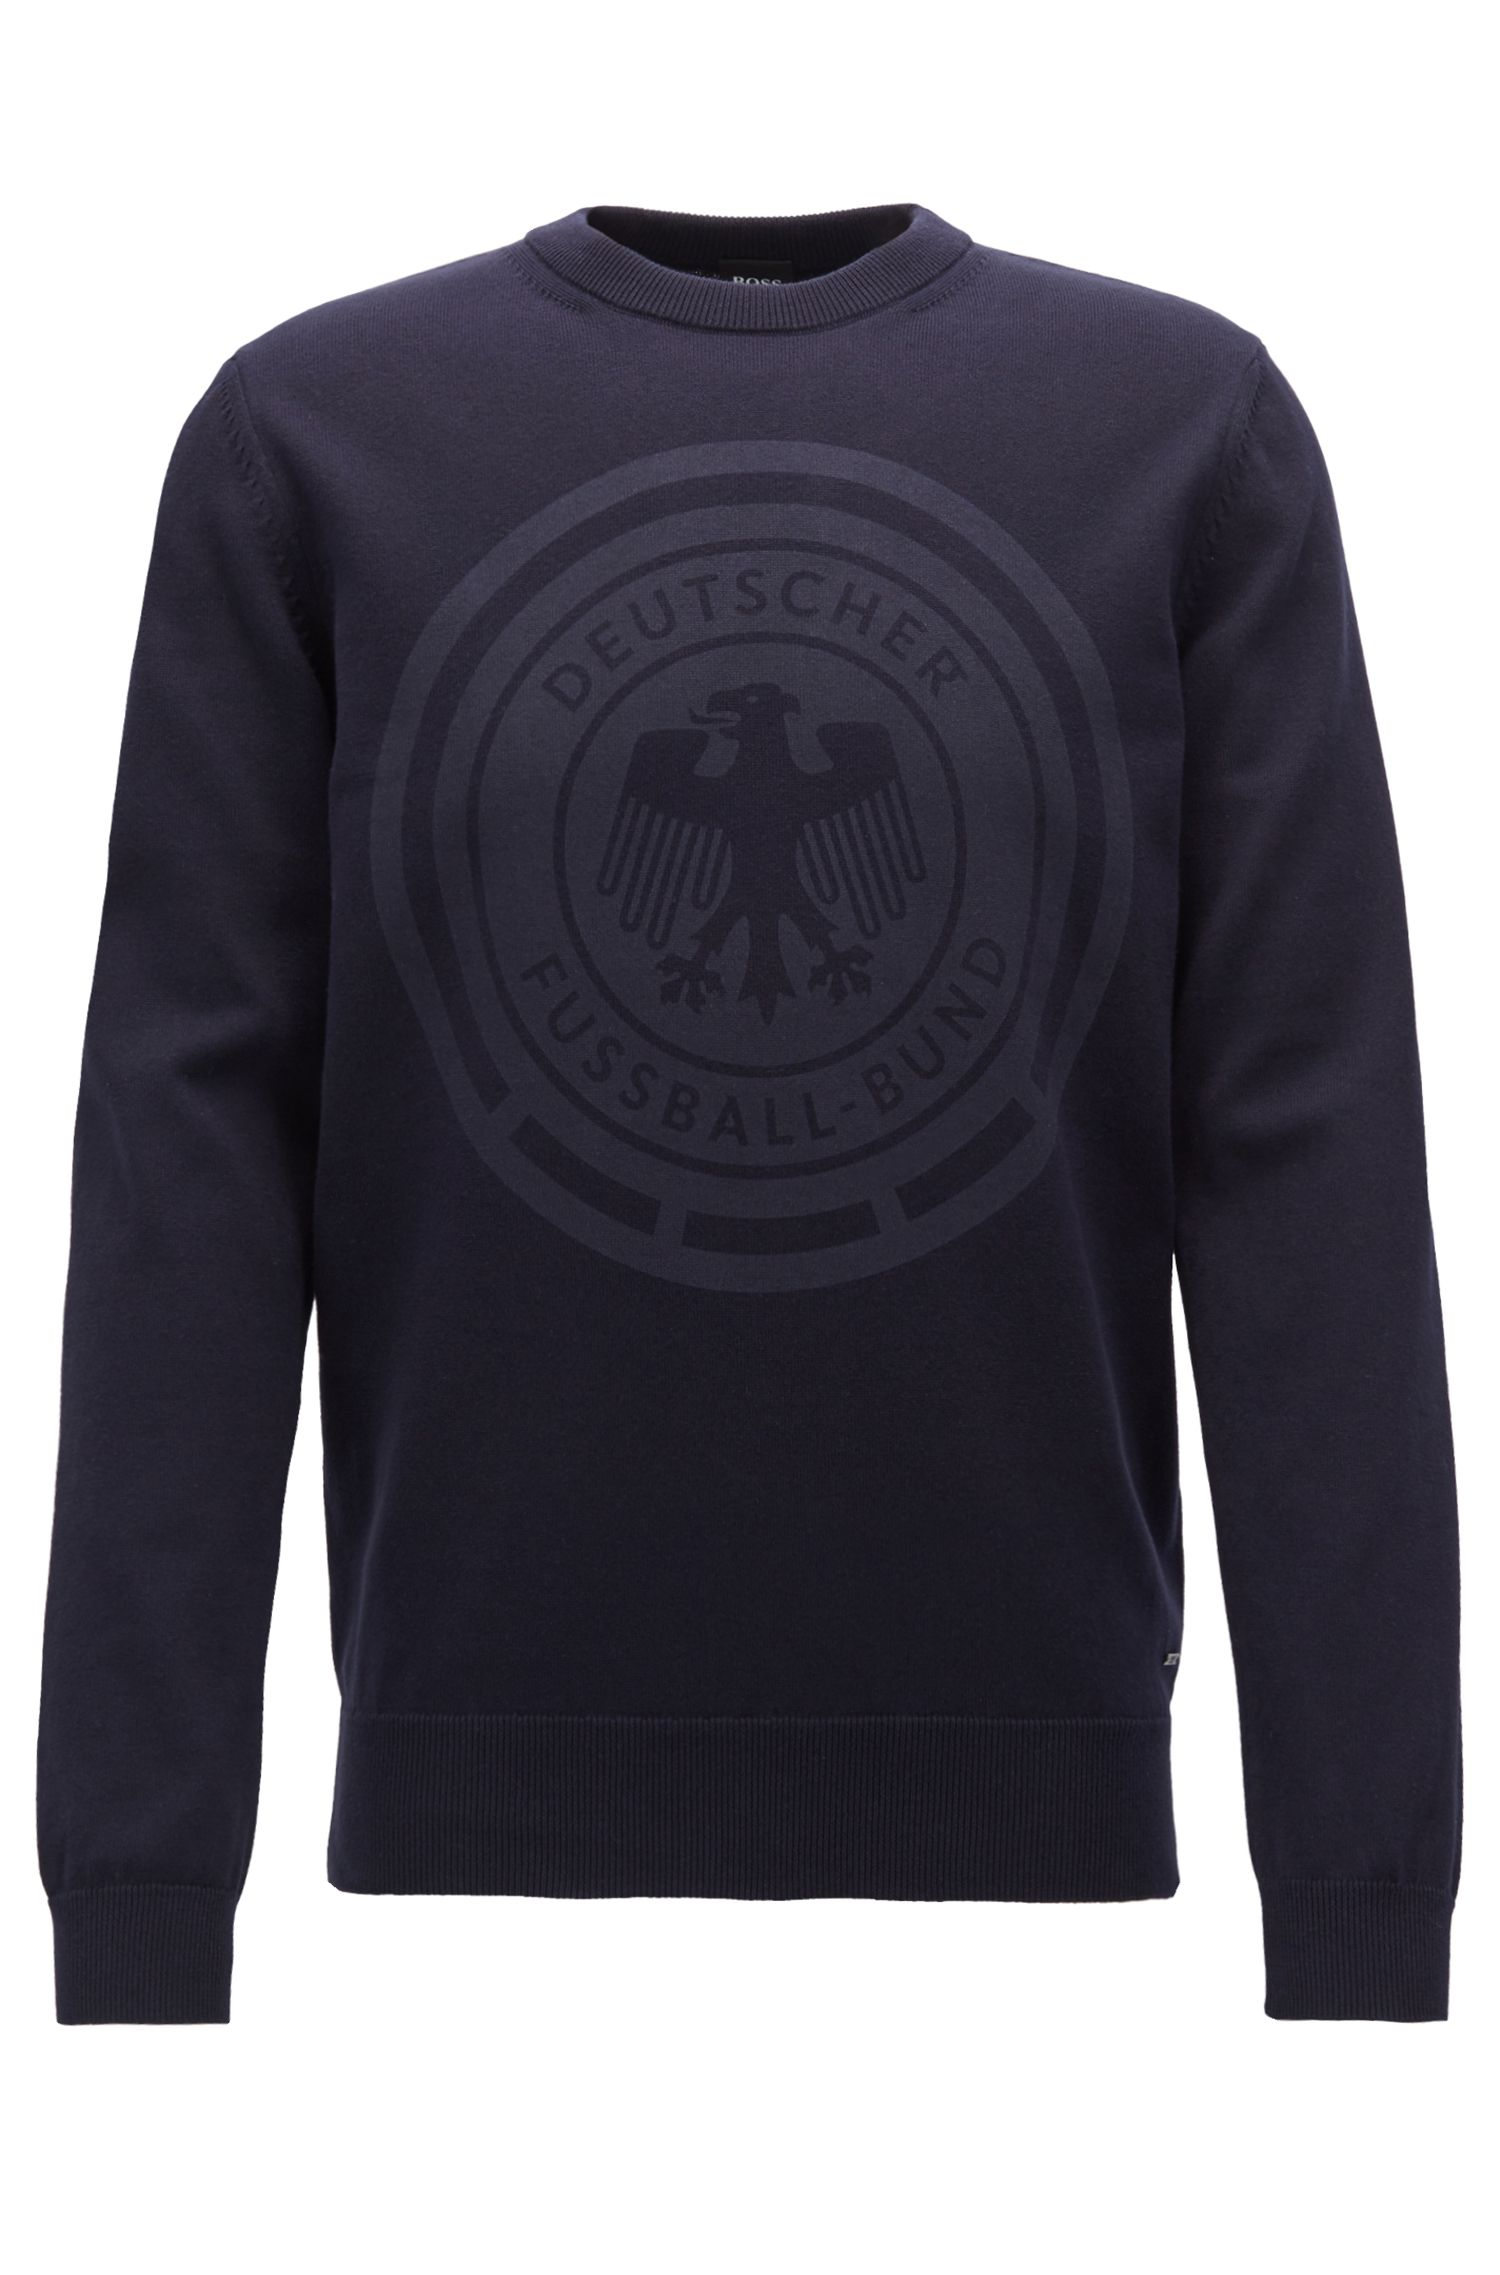 Cotton sweatshirt with logo print, Dark Blue